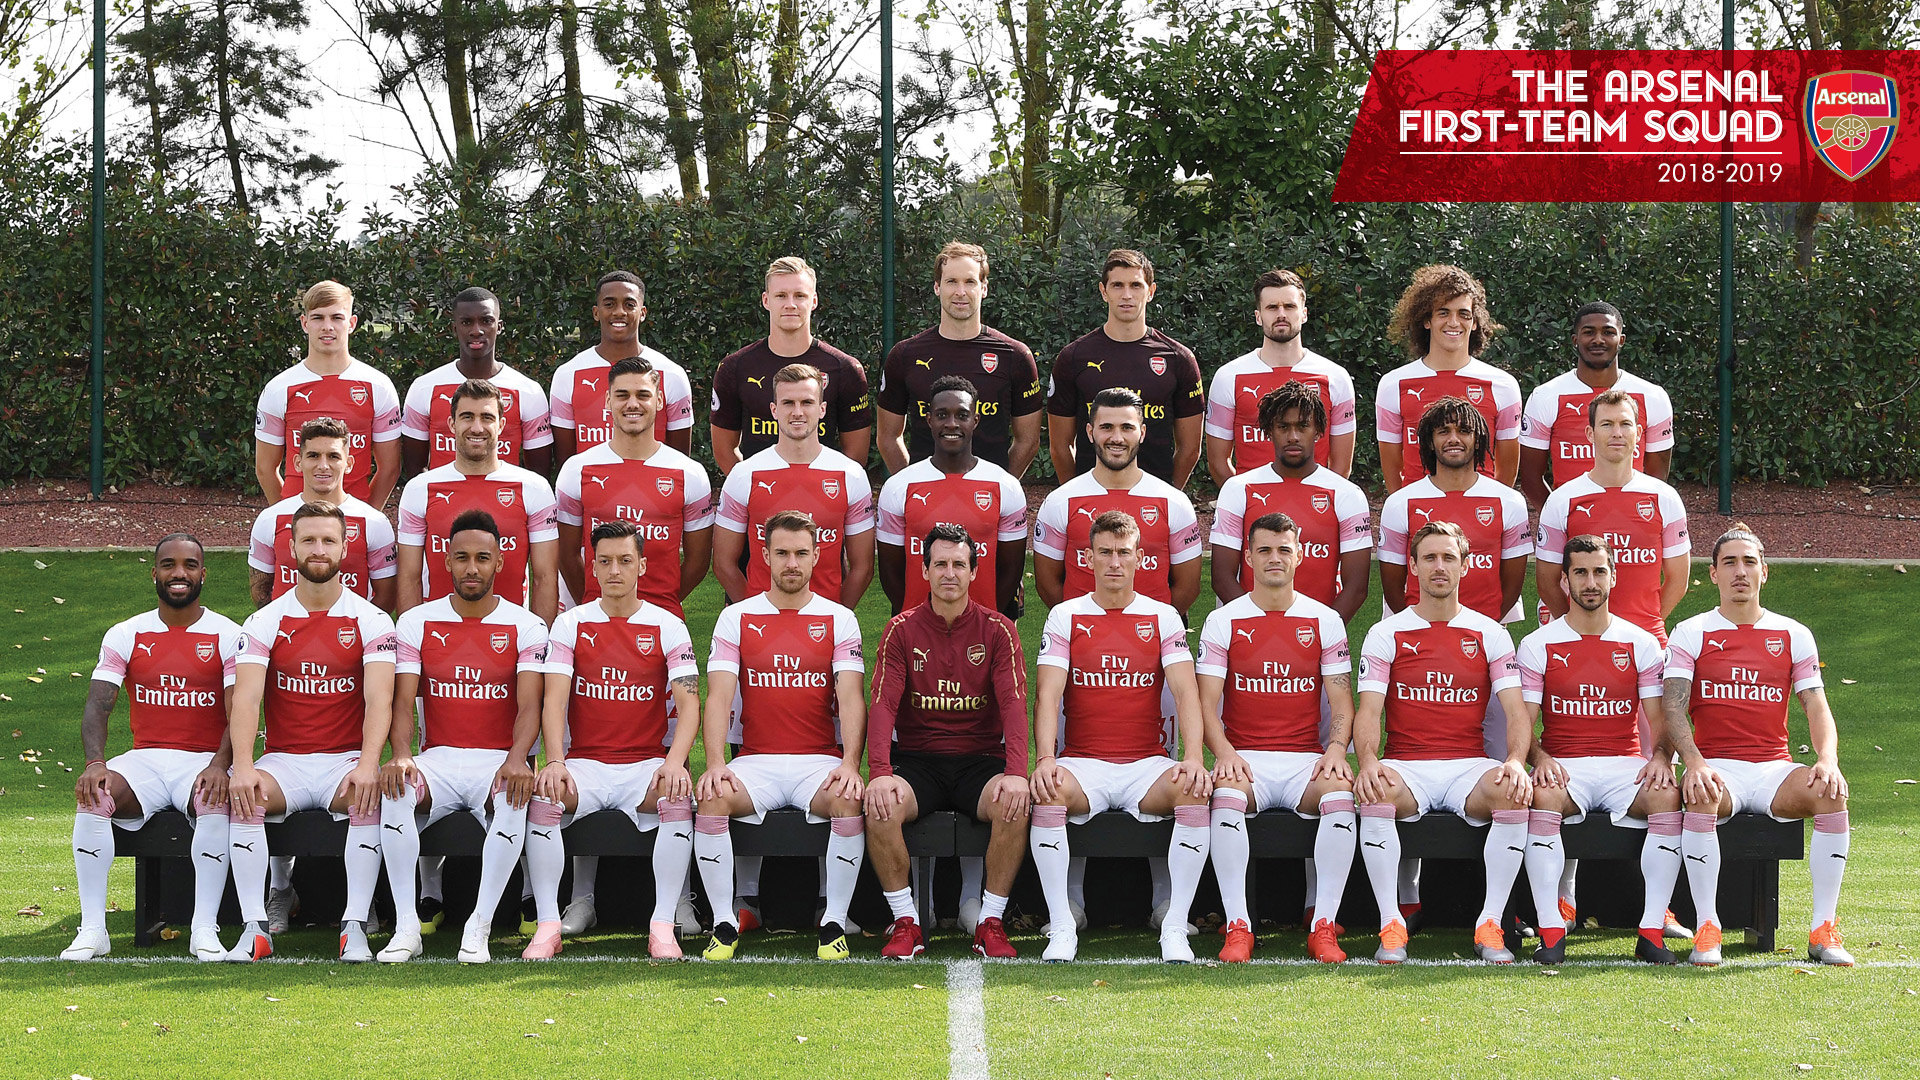 Wallpaper Of The Arsenal FC 2018 2019 First Team Squad PaperPull 1920x1080